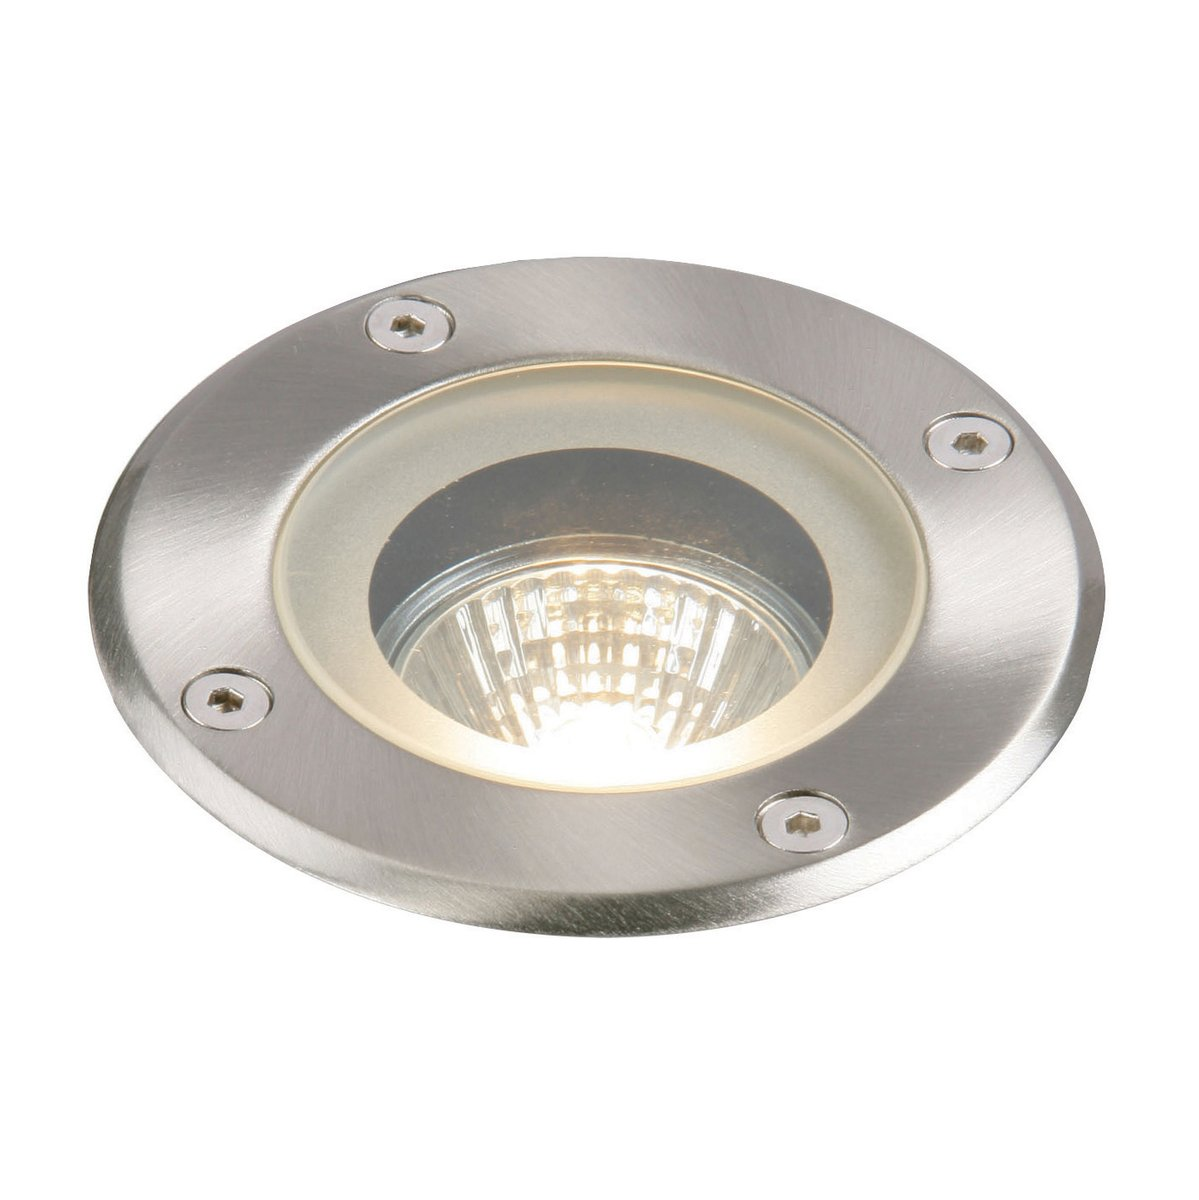 Square Outdoor Weatherproof GU10 Walk Over Decking Lights IP65 Rated Pack of 4 Buried Uplighters Recessed Ground Lights